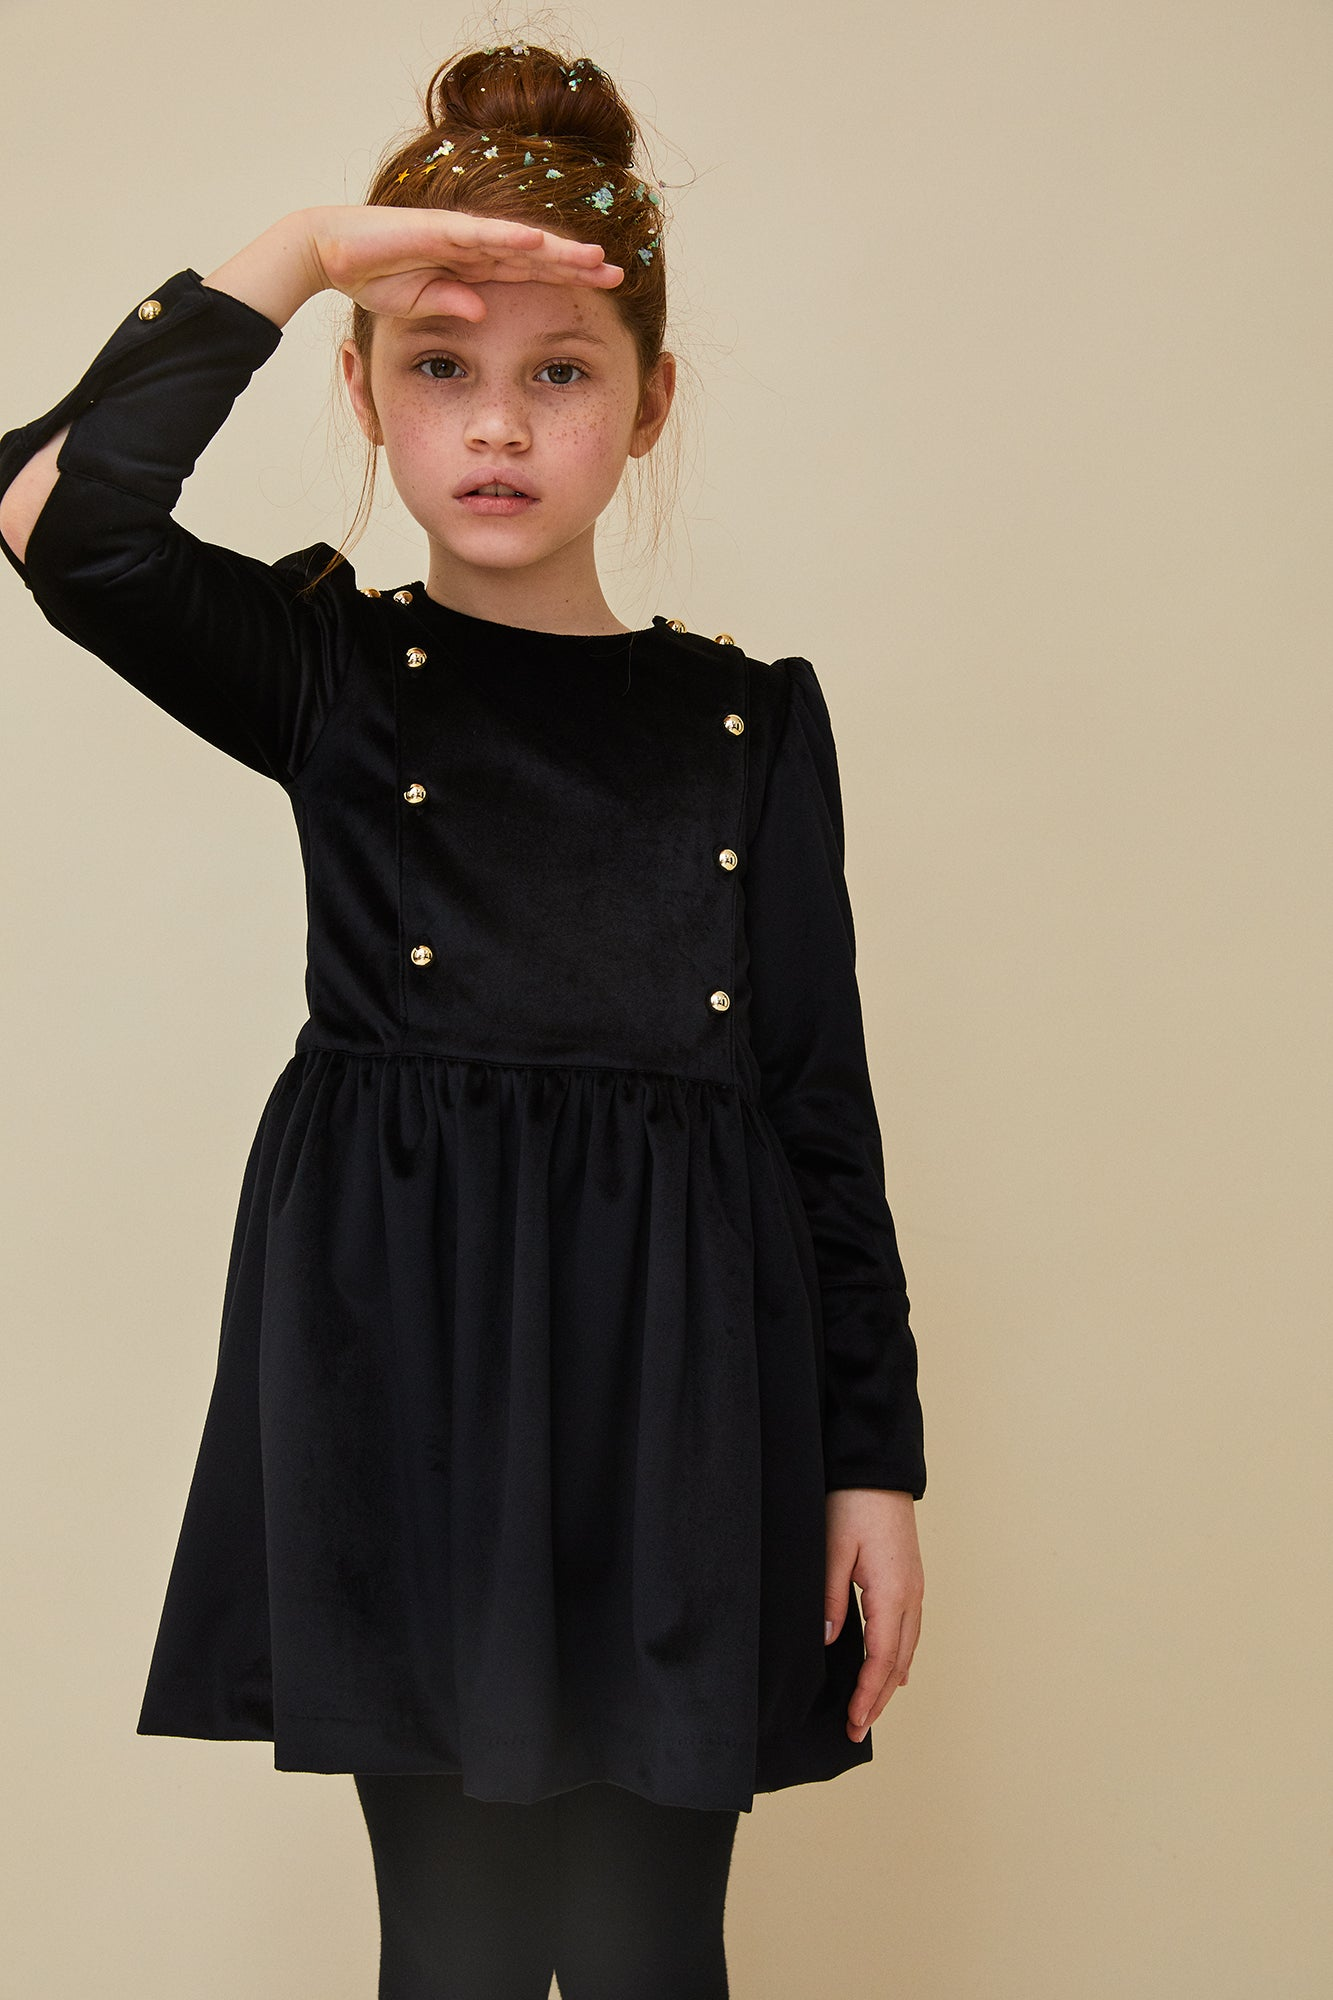 Nueces Black Velvet Alya Dress